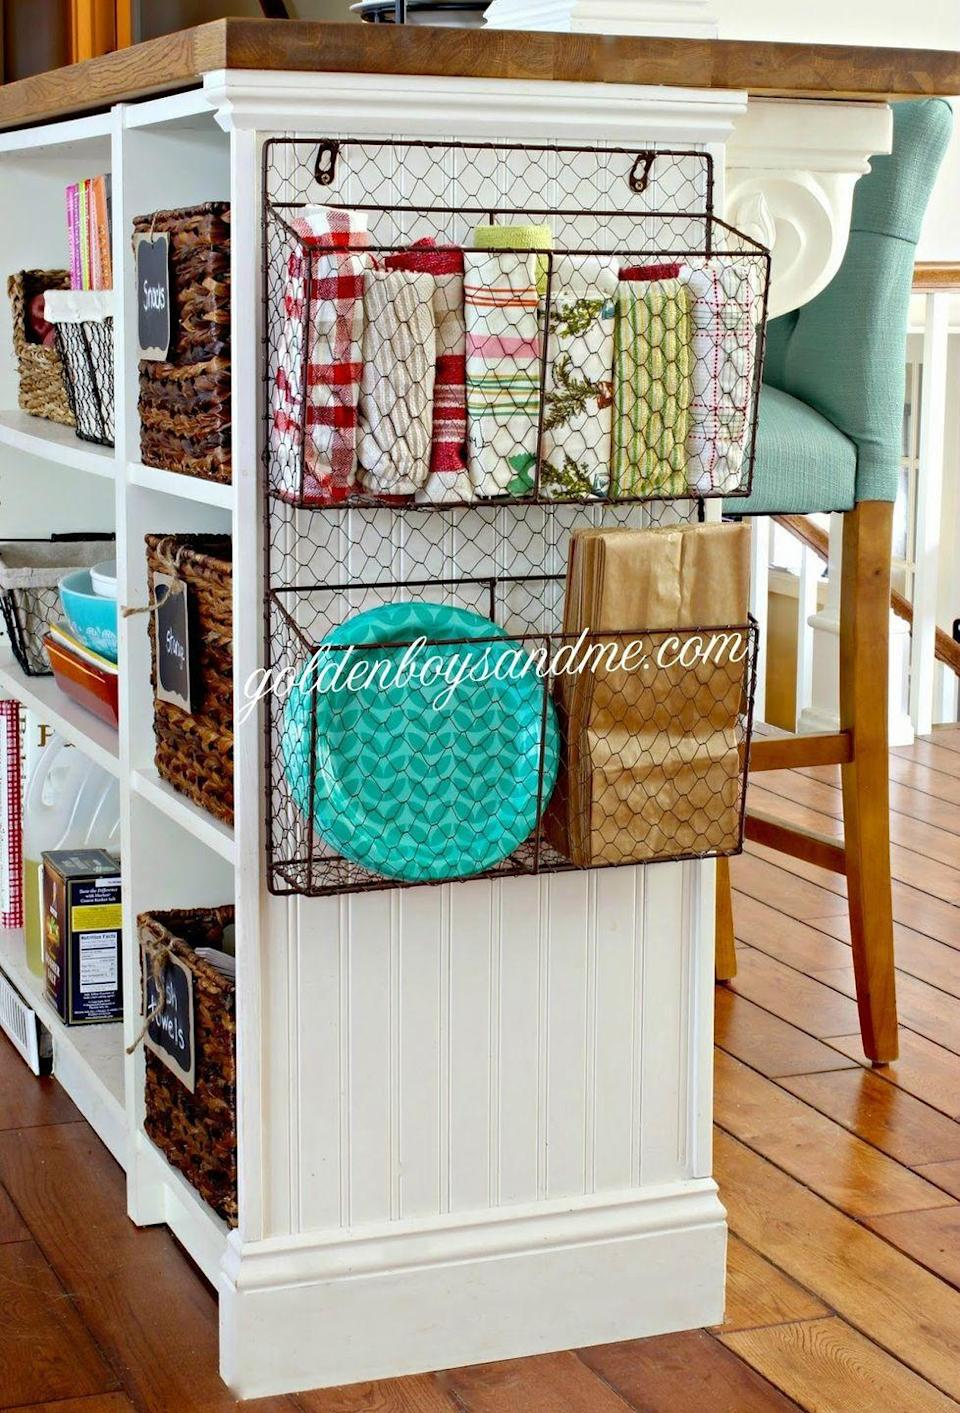 """<p>Don't overlook the side of a kitchen island (or even a bookshelf). Adding a basket takes all of three seconds, and gives you a handy spot for frequently accessed items.</p><p><a href=""""http://www.goldenboysandme.com/2014/09/wire-baskets.html"""" rel=""""nofollow noopener"""" target=""""_blank"""" data-ylk=""""slk:See more at Golden Boys and Me »"""" class=""""link rapid-noclick-resp""""><em>See more at Golden Boys and Me »</em></a></p>"""